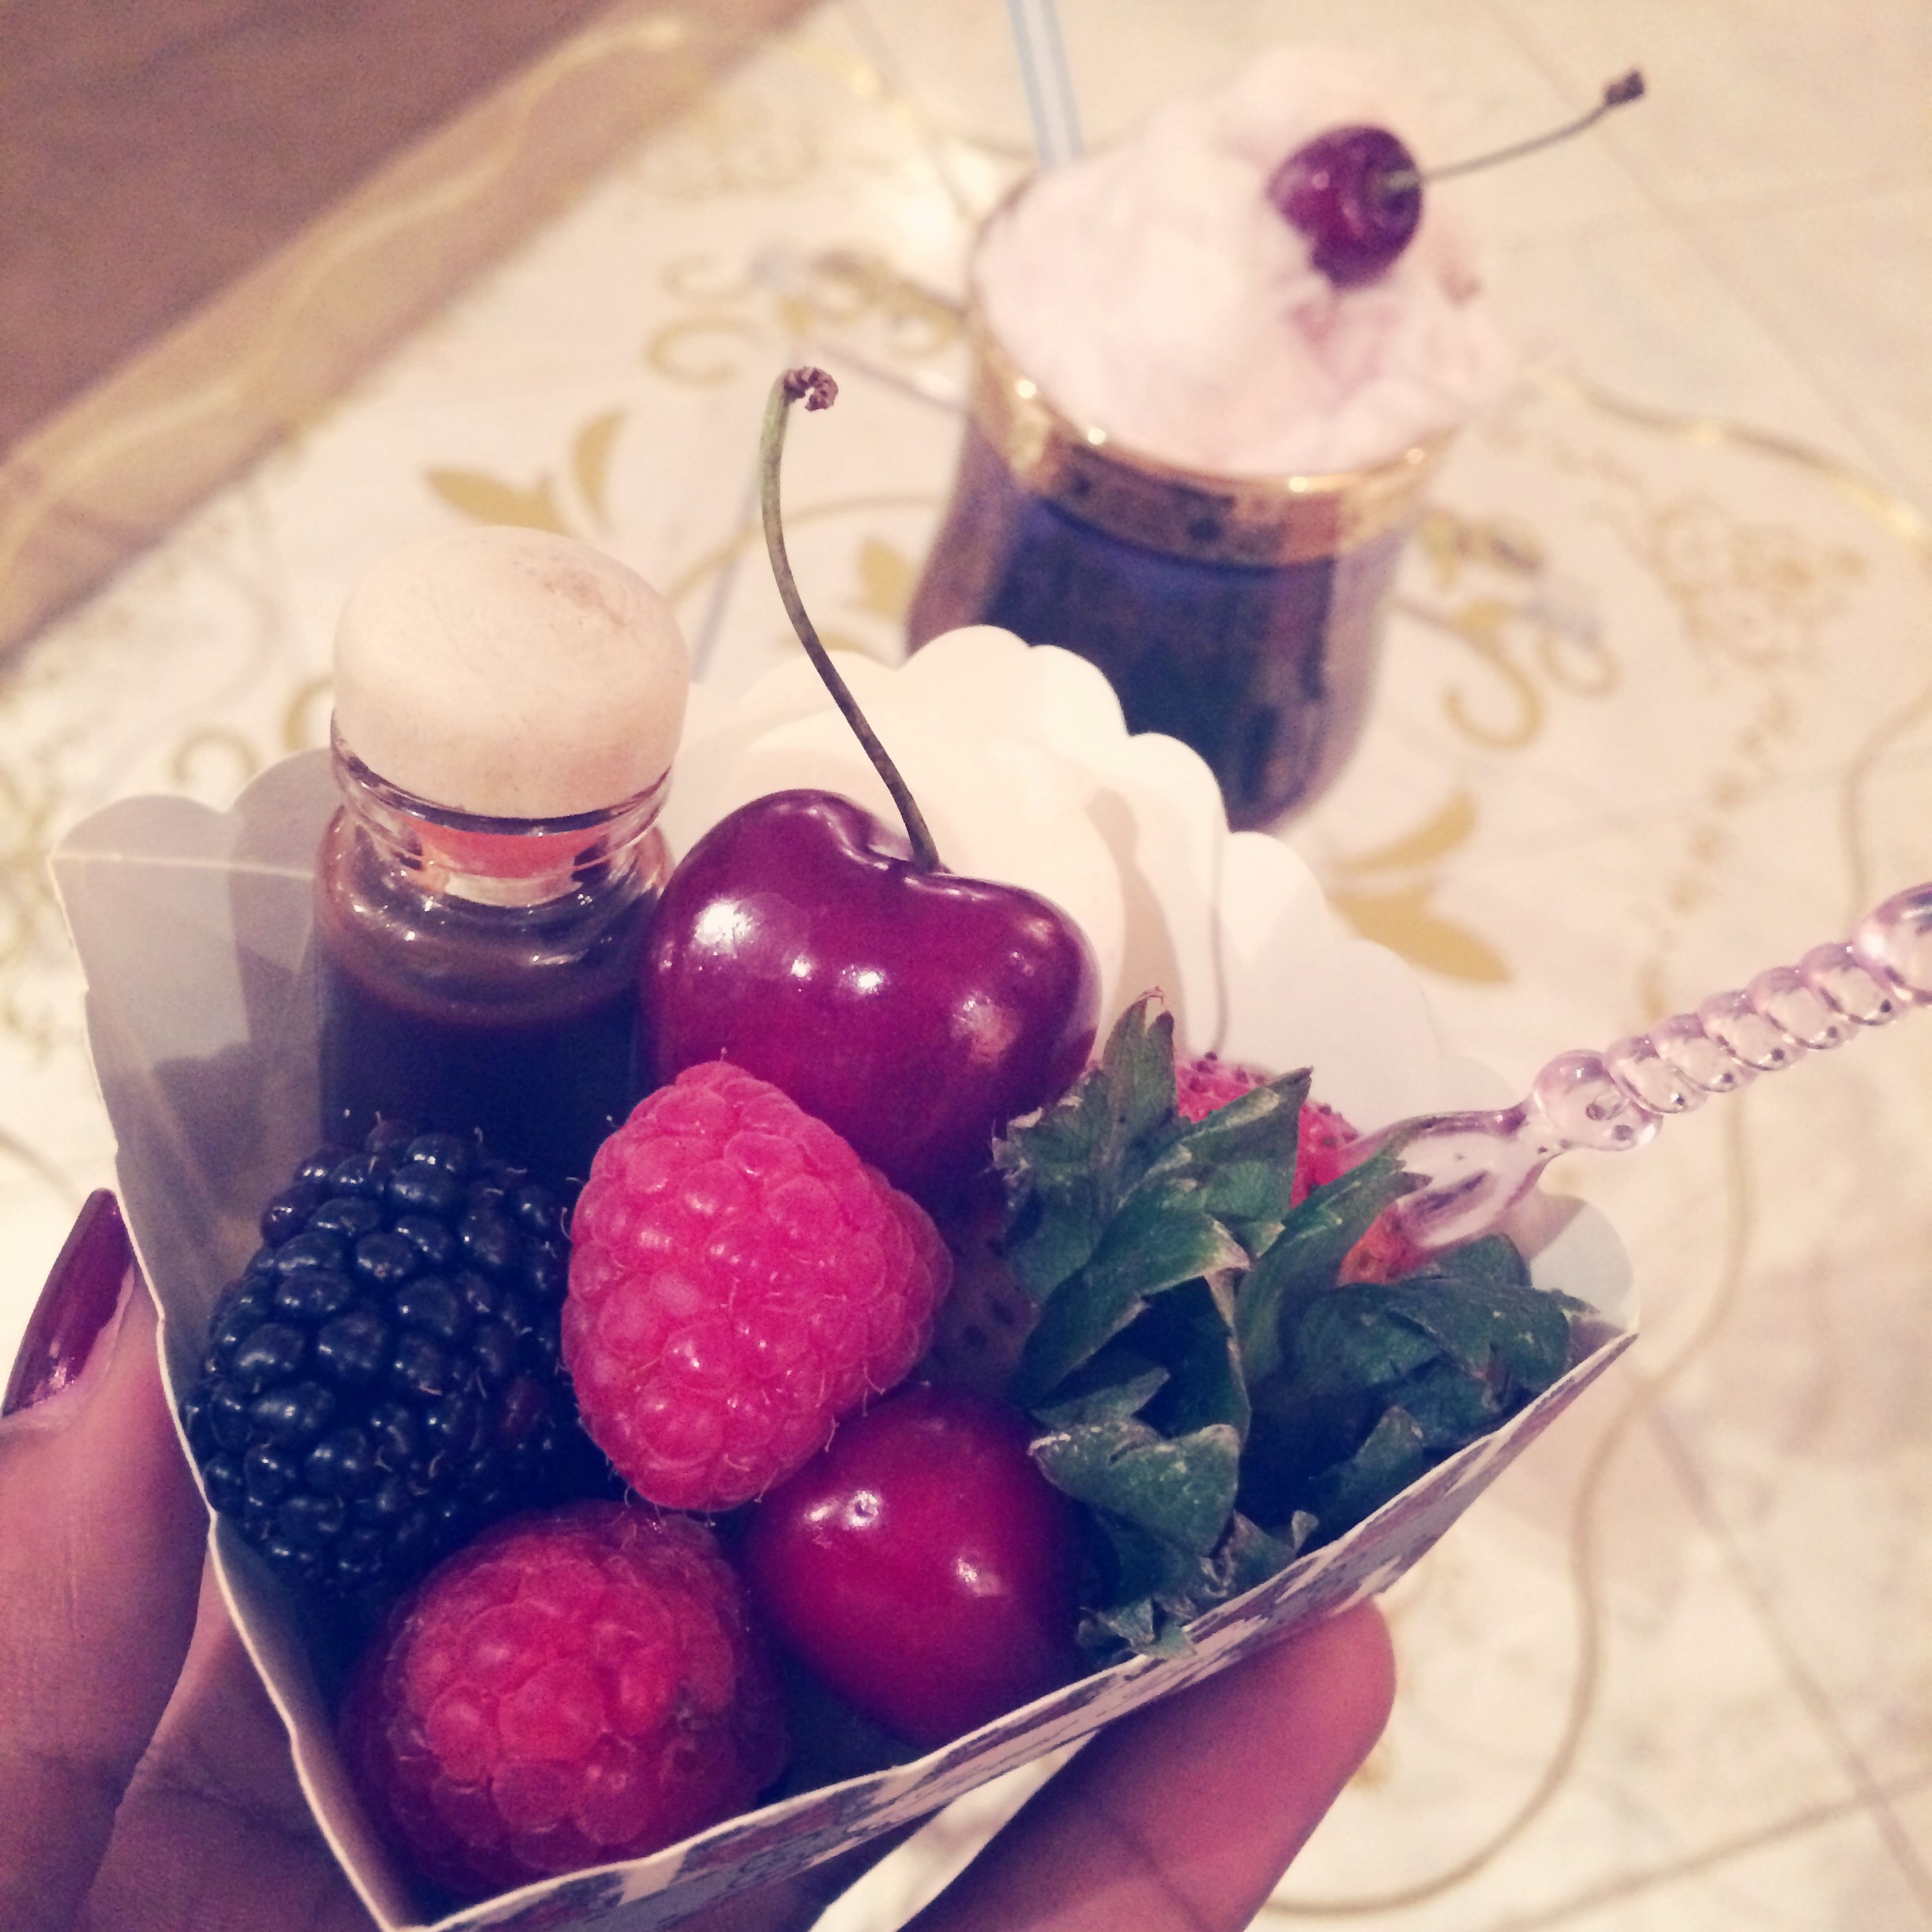 food and drink, indoors, food, freshness, fruit, healthy eating, table, still life, strawberry, one person, sweet food, indulgence, high angle view, ready-to-eat, close-up, holding, dessert, person, plate, temptation